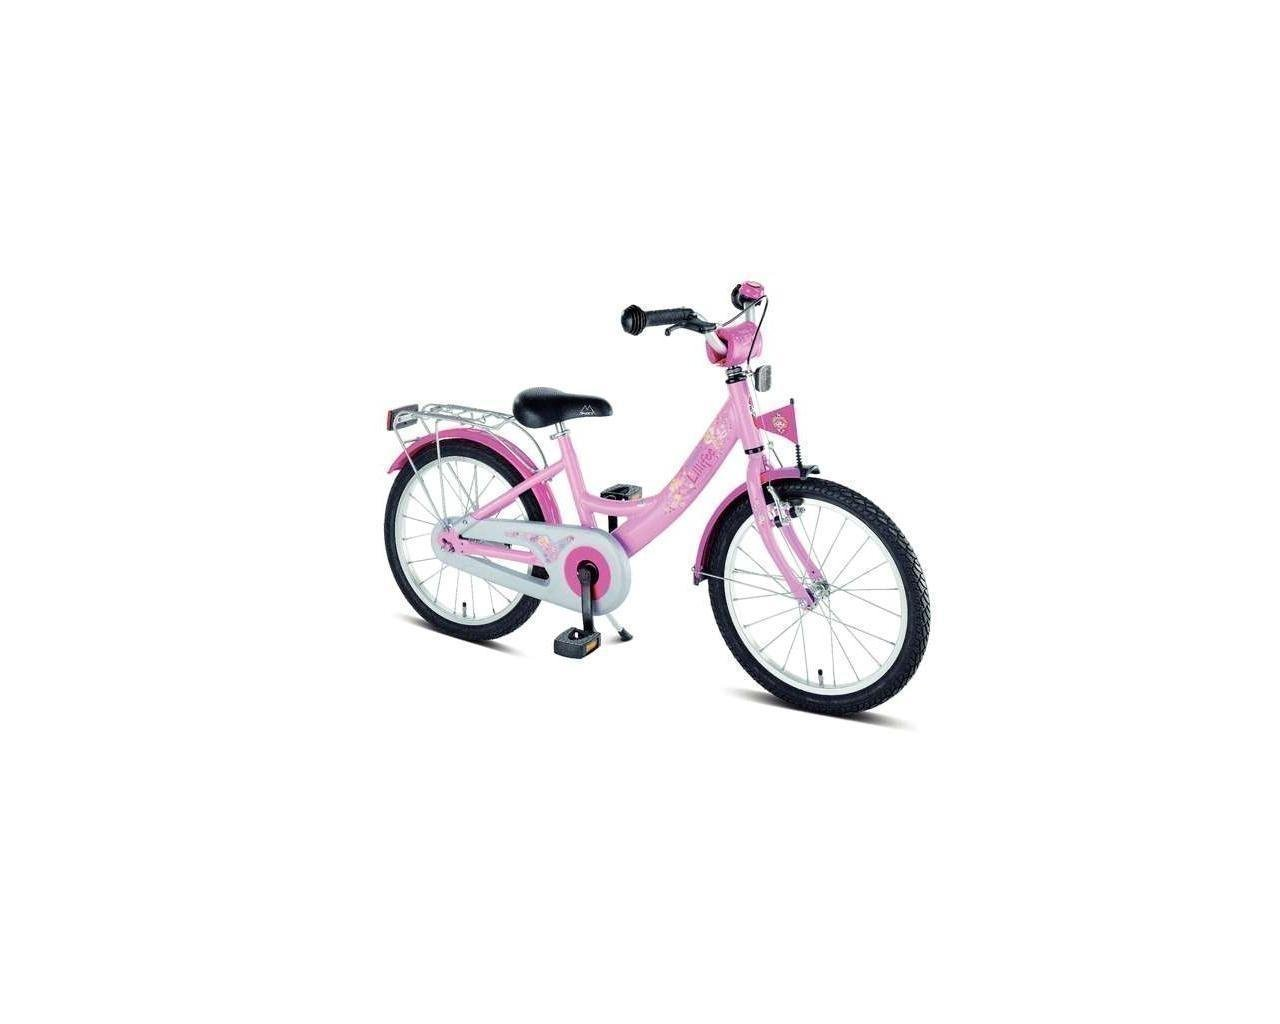 Princess lillifee coloring pages - Puky 4229 Zl 16 Alu Bike Princess Lillifee Amazon Co Uk Toys Games